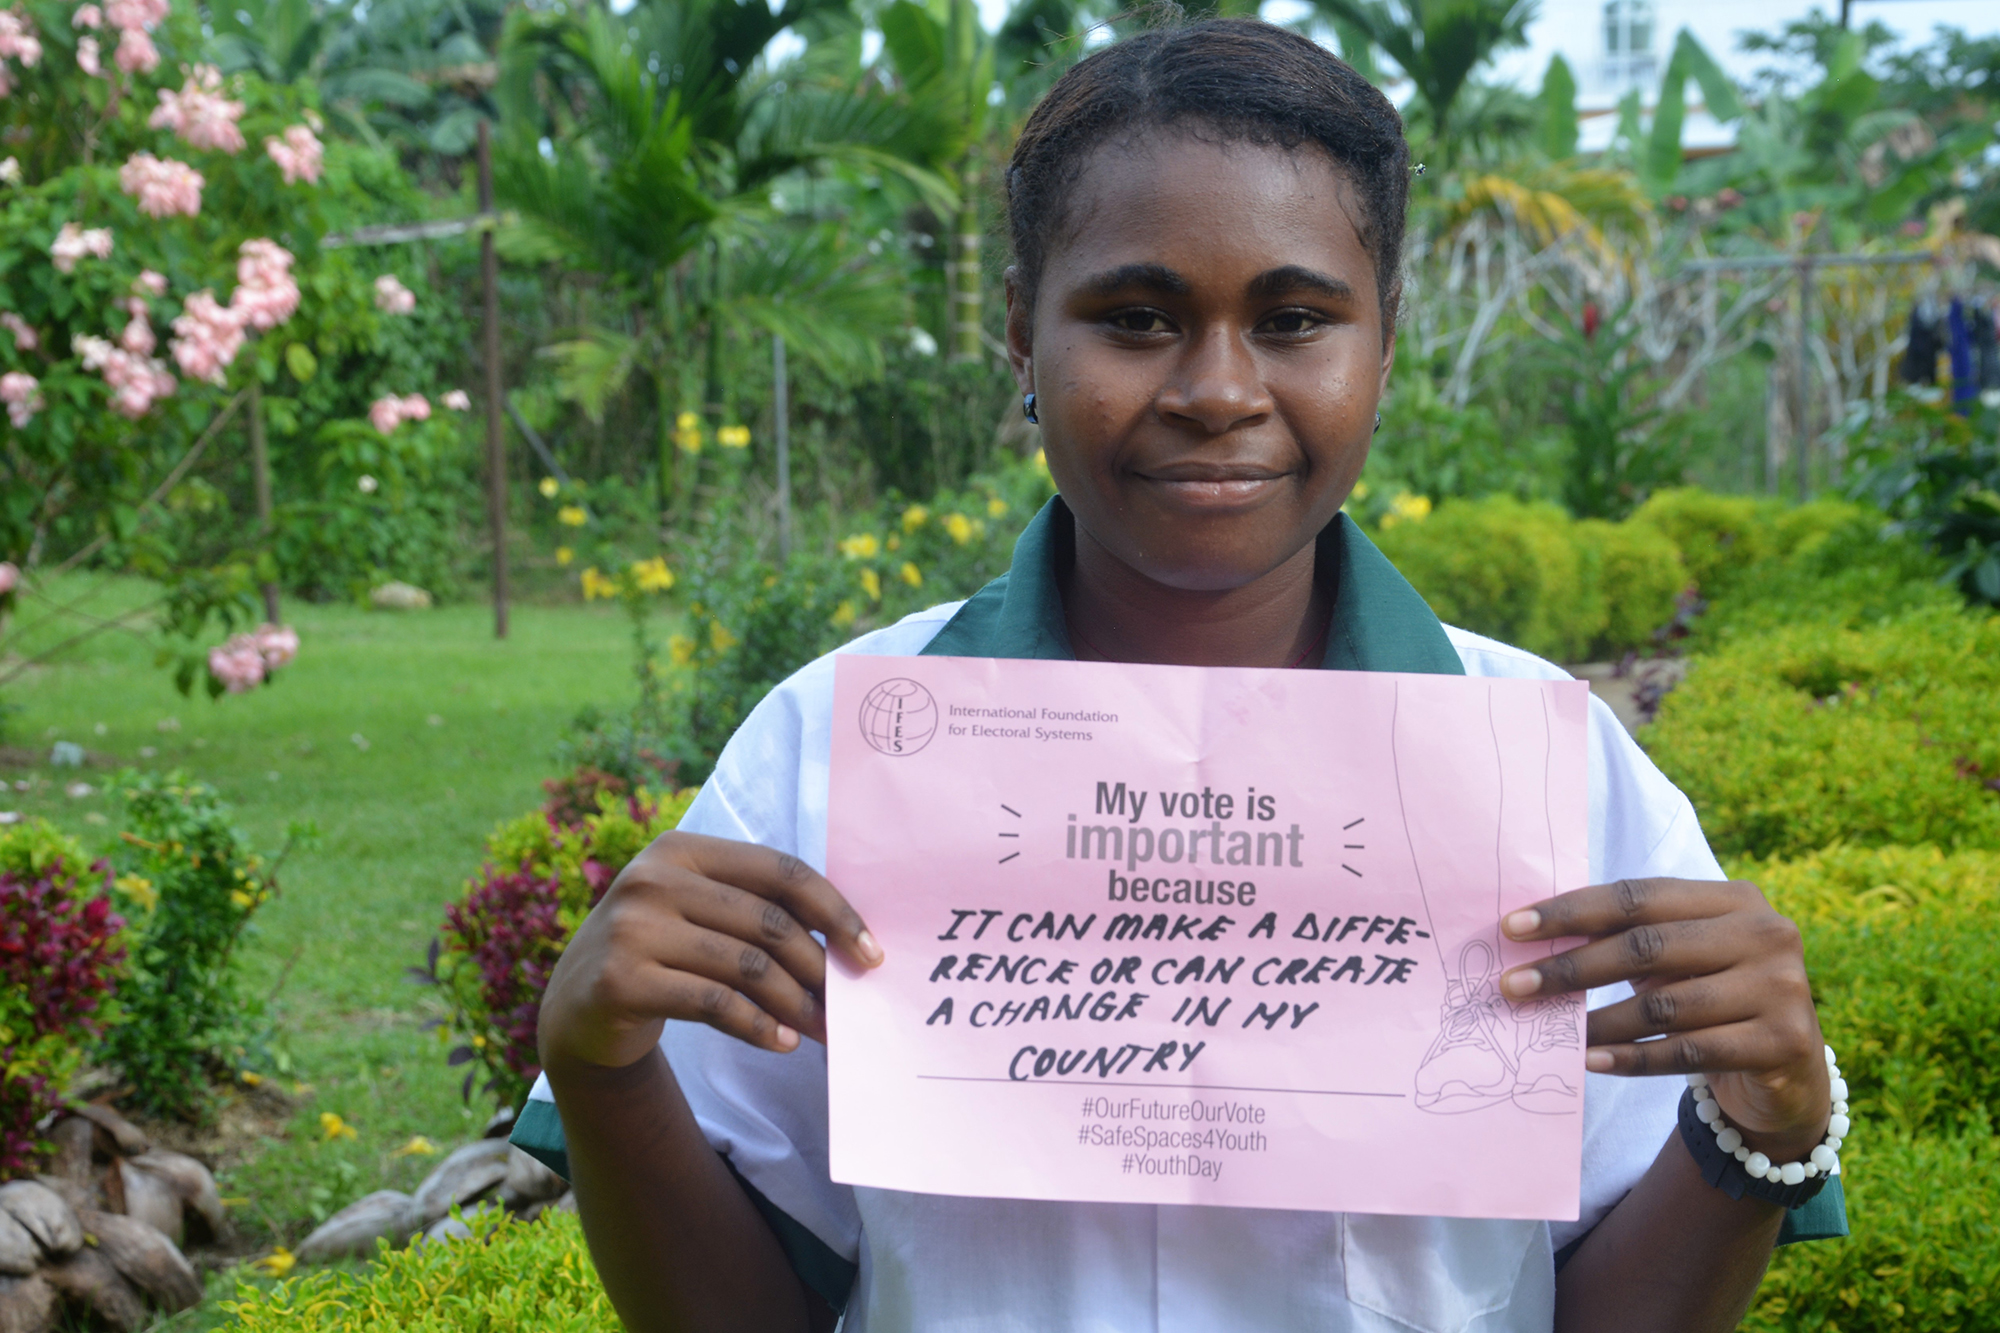 A Bougainvillean student explains that her vote is important because she can make a difference.